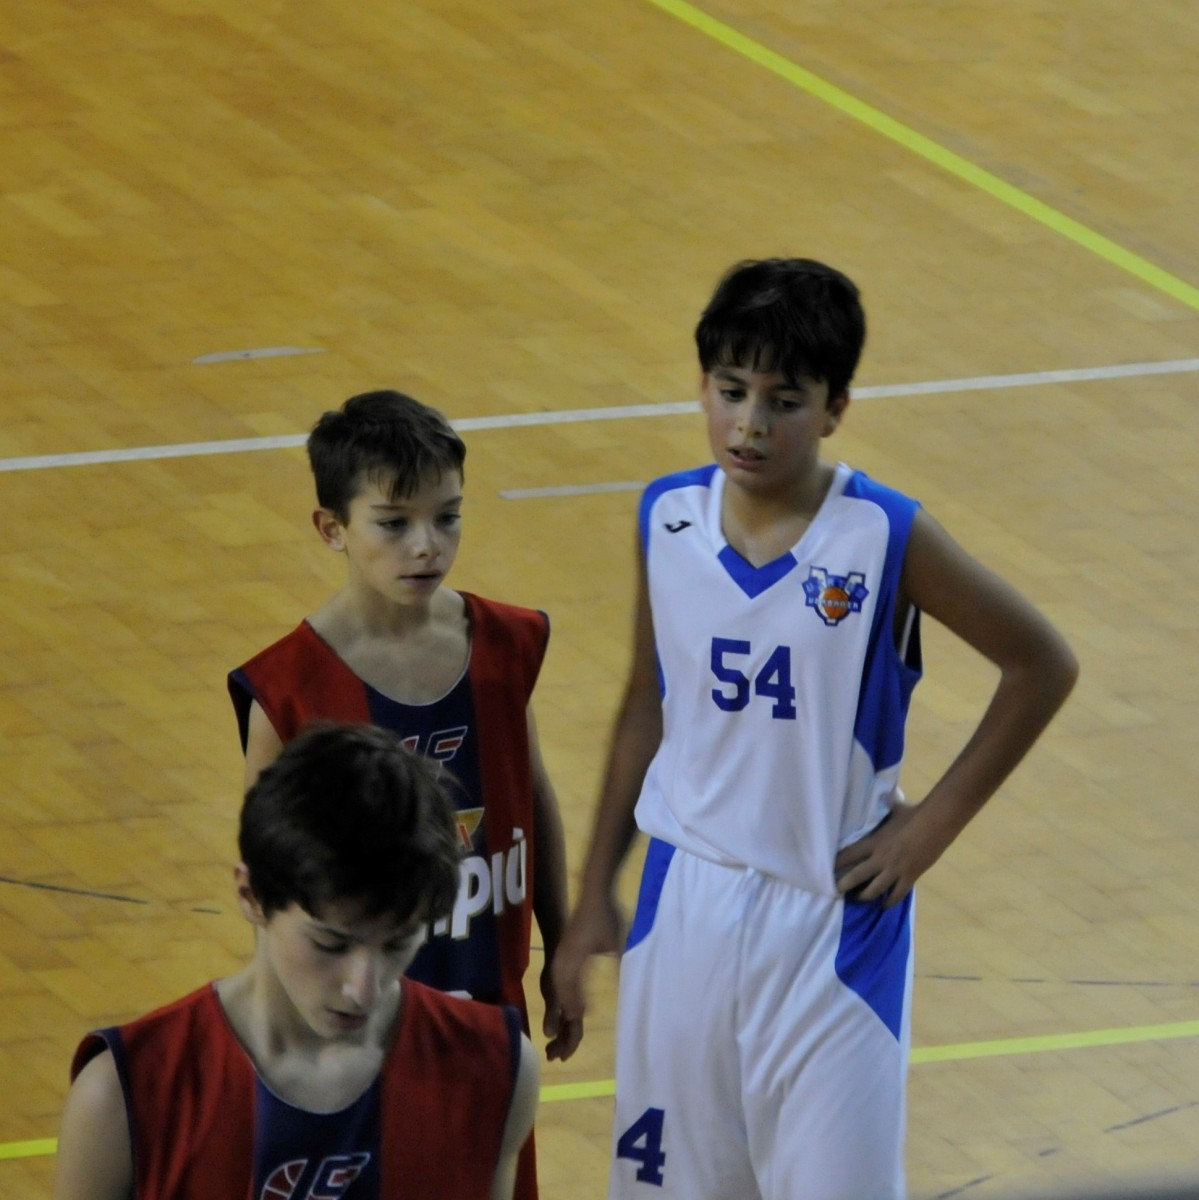 Junior-Casale-Virtus-U13-2019-12-01_009